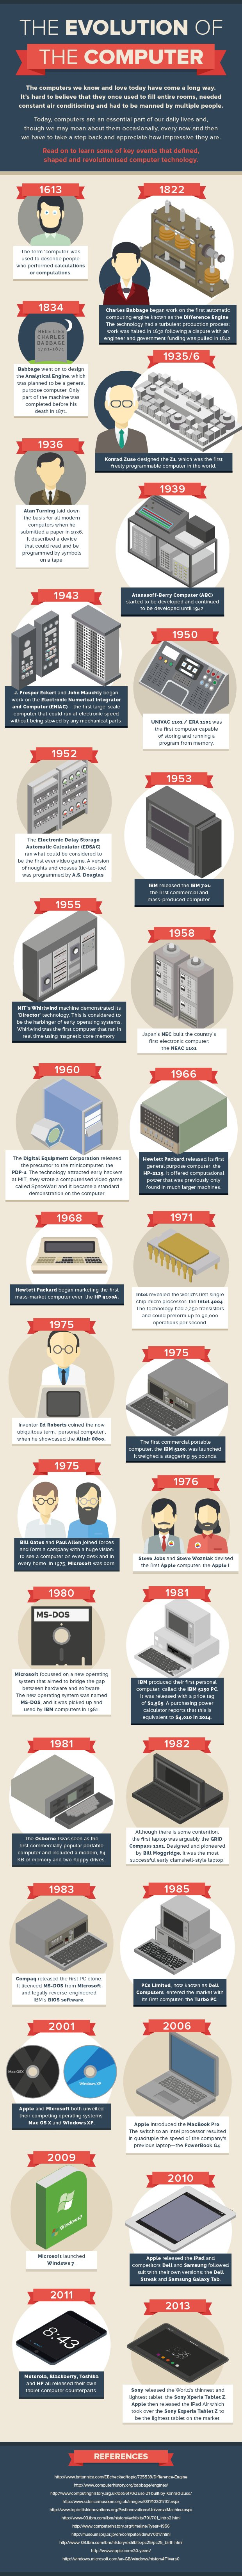 The Evolution of the Computer by ebuyer.com